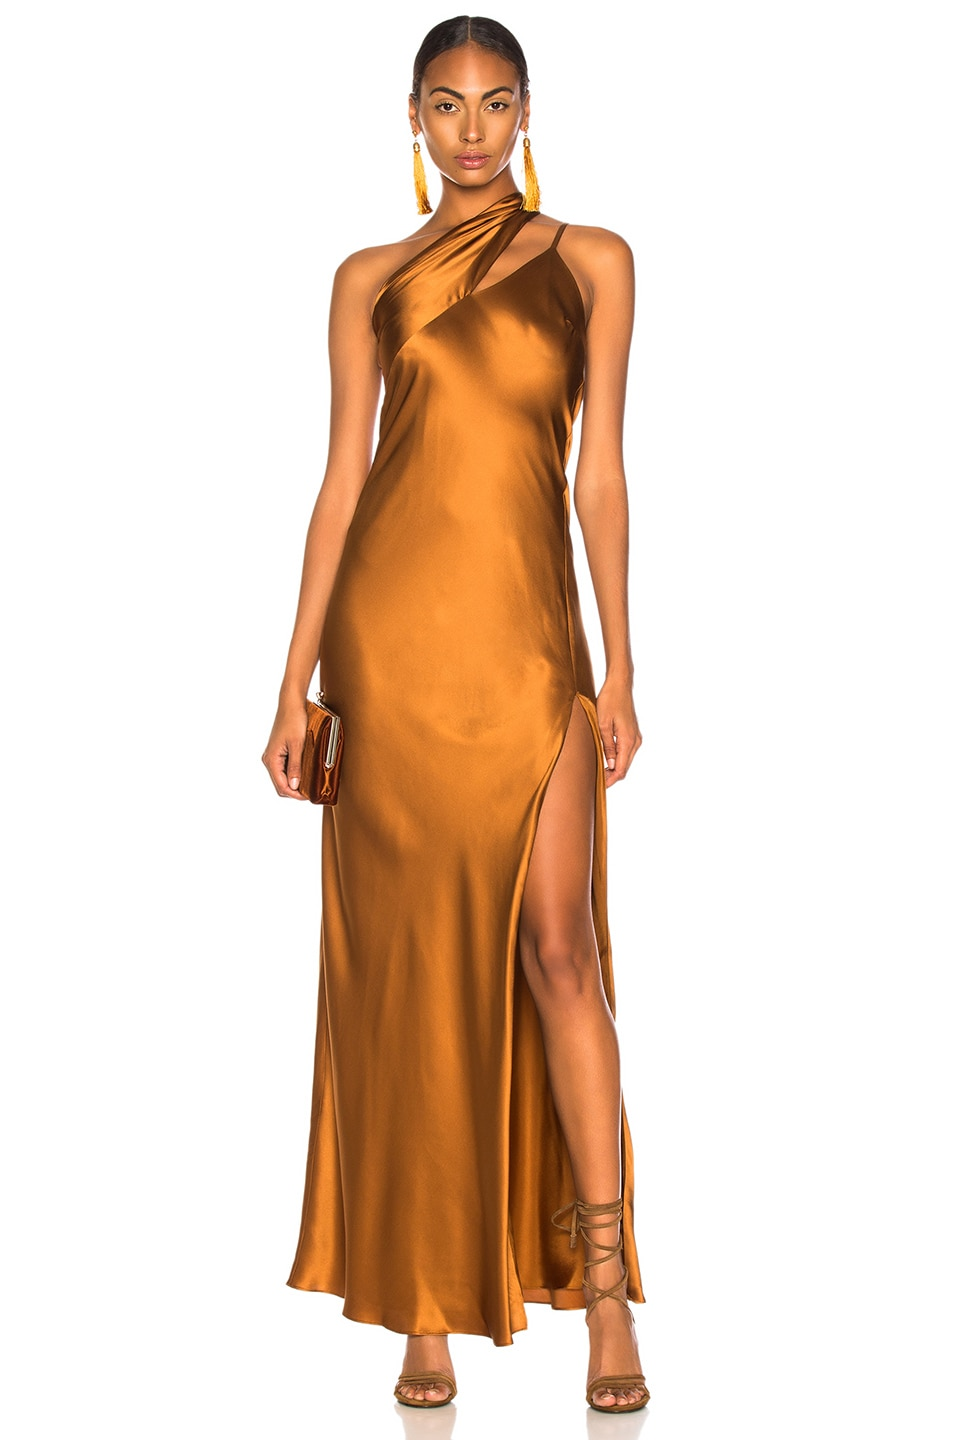 68d9e8d7e08f9 Image 1 of Michelle Mason One Shoulder Gown With Tie in Toffee